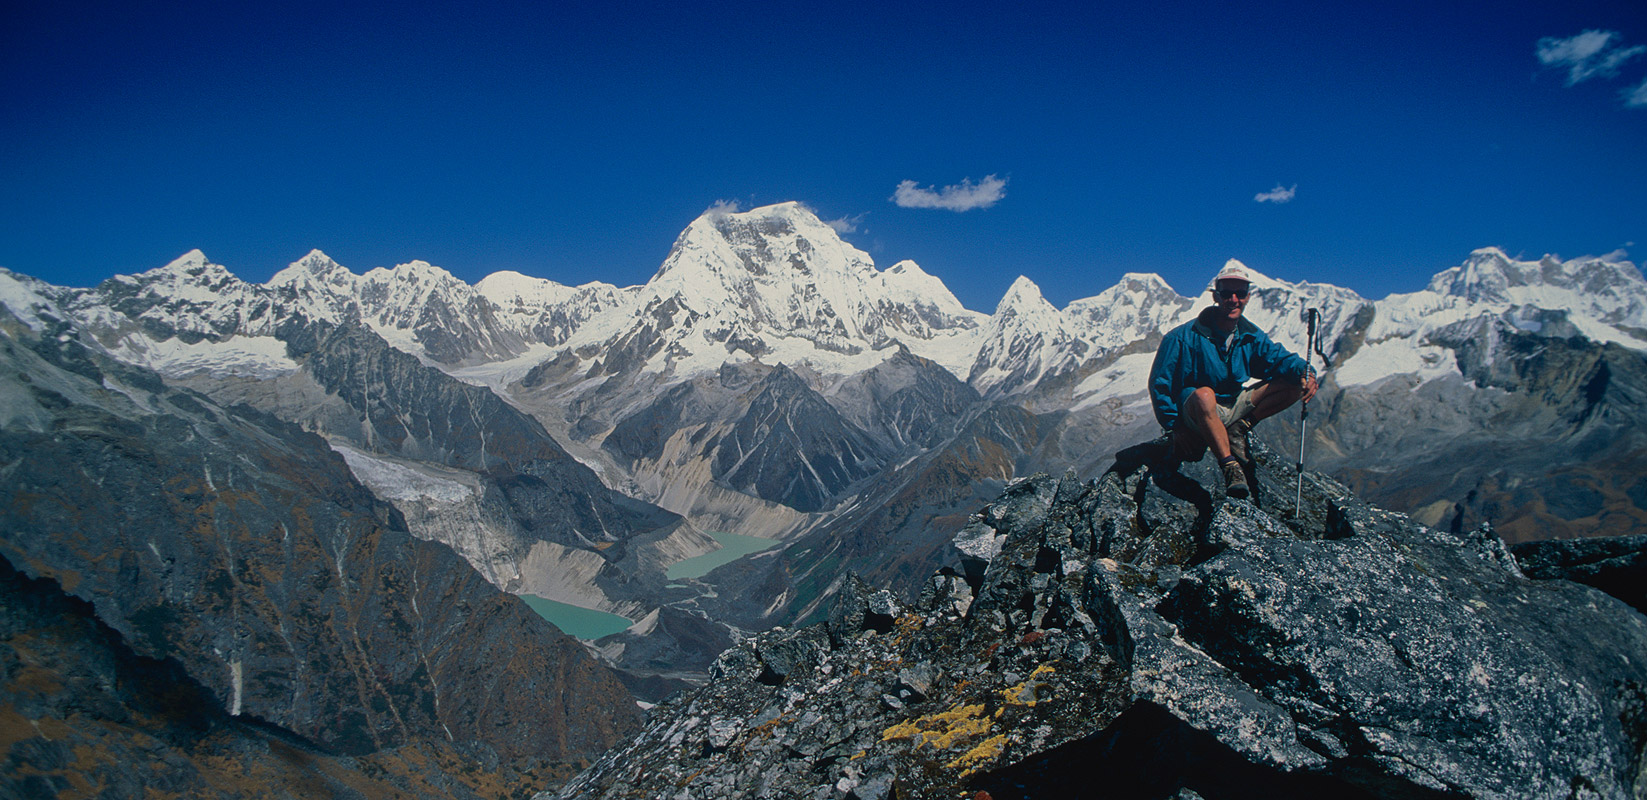 Yours truly on the crest of a ridge above the pass, with Jejekangphu Kang etc beyond.Nikon FM2, 28mm, Fuji Velvia